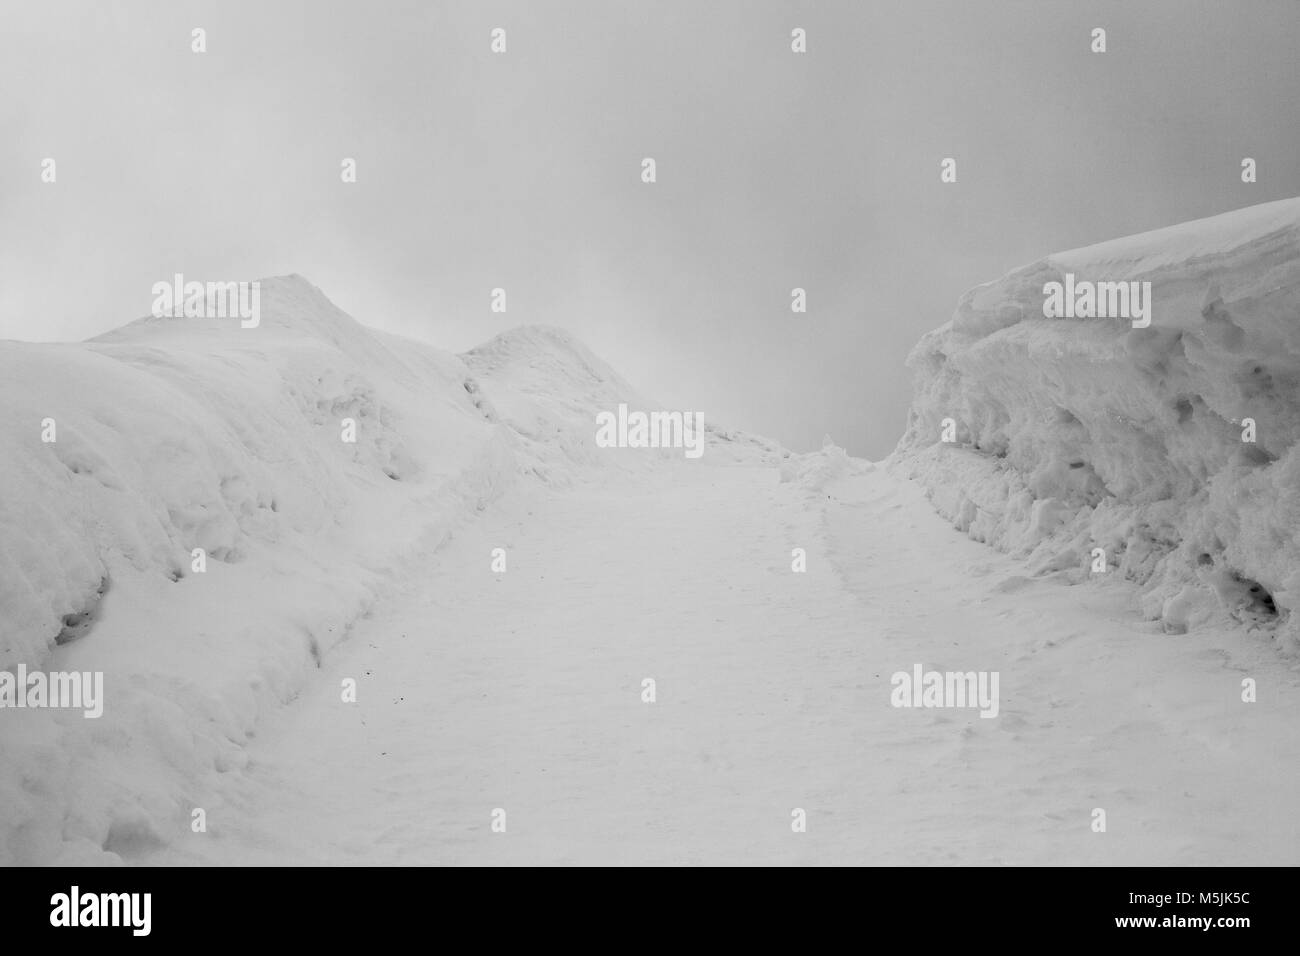 An amazing view of snow covered landscape, mountains and a ski piste in the alps switzerland in winter - Stock Image